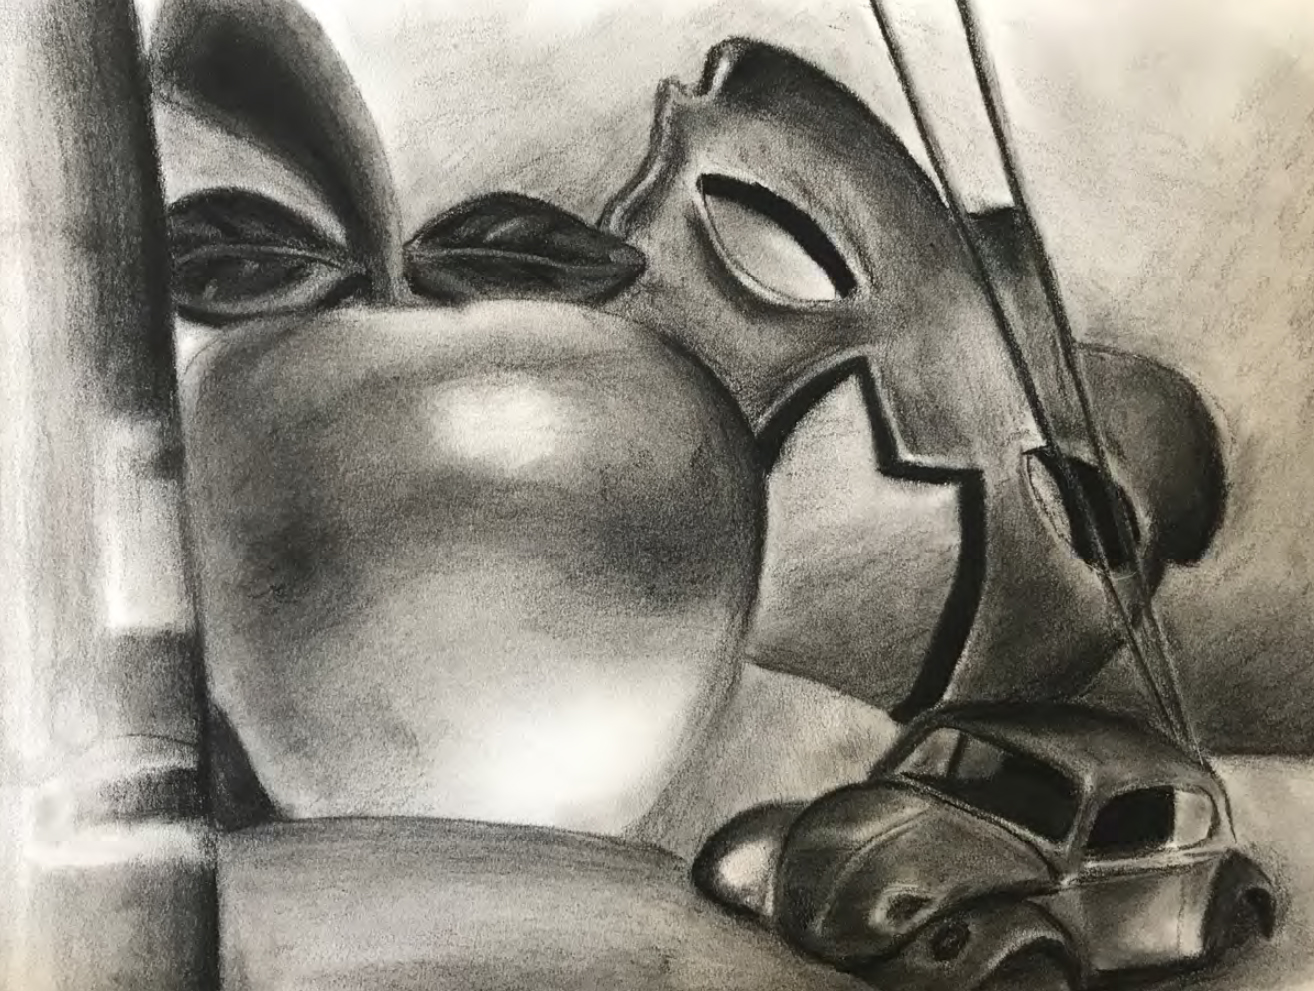 Student Work #9: Still Life: Scale Relationships